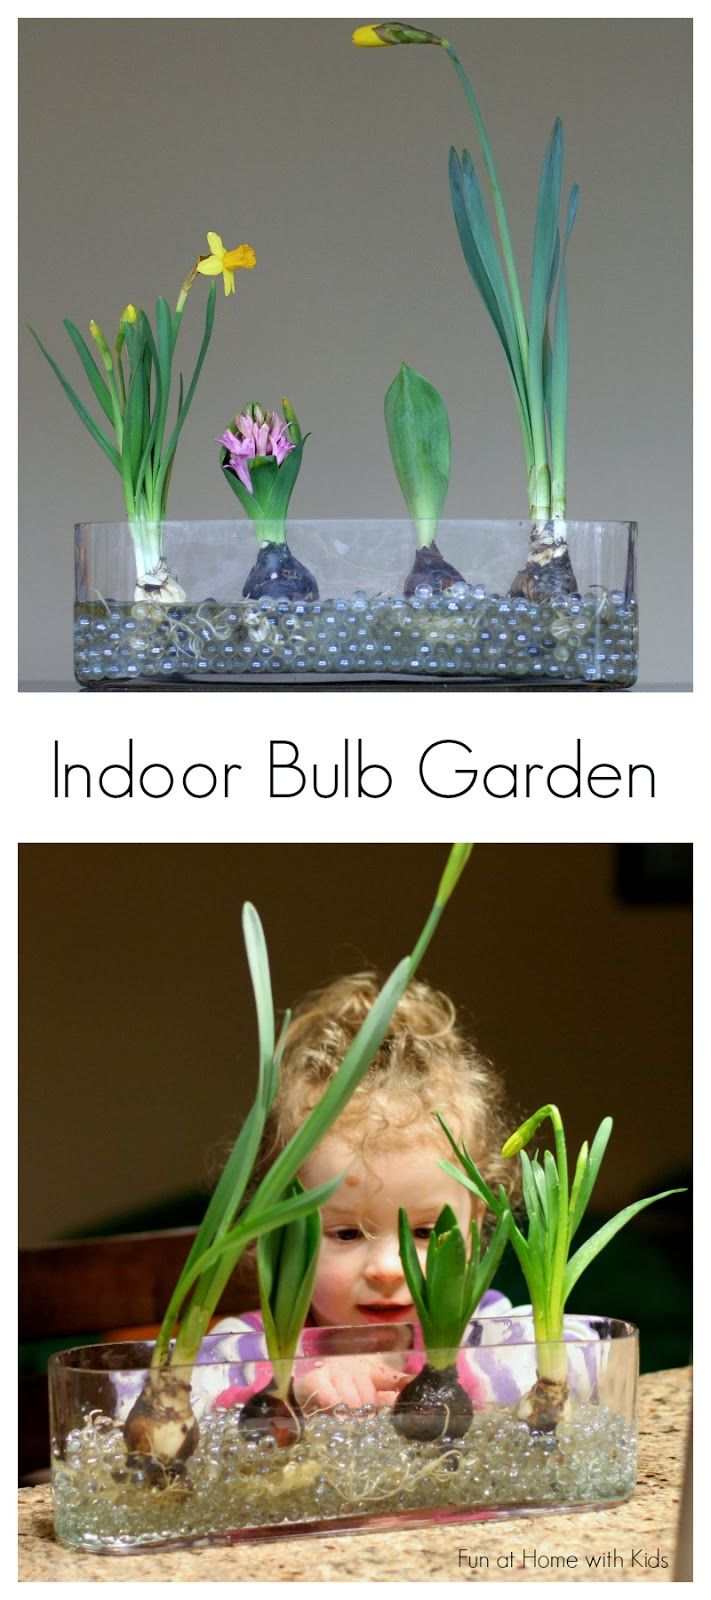 Invite Nature In With 20 Incredible Indoor Plants Ideas-homesthetics (19)